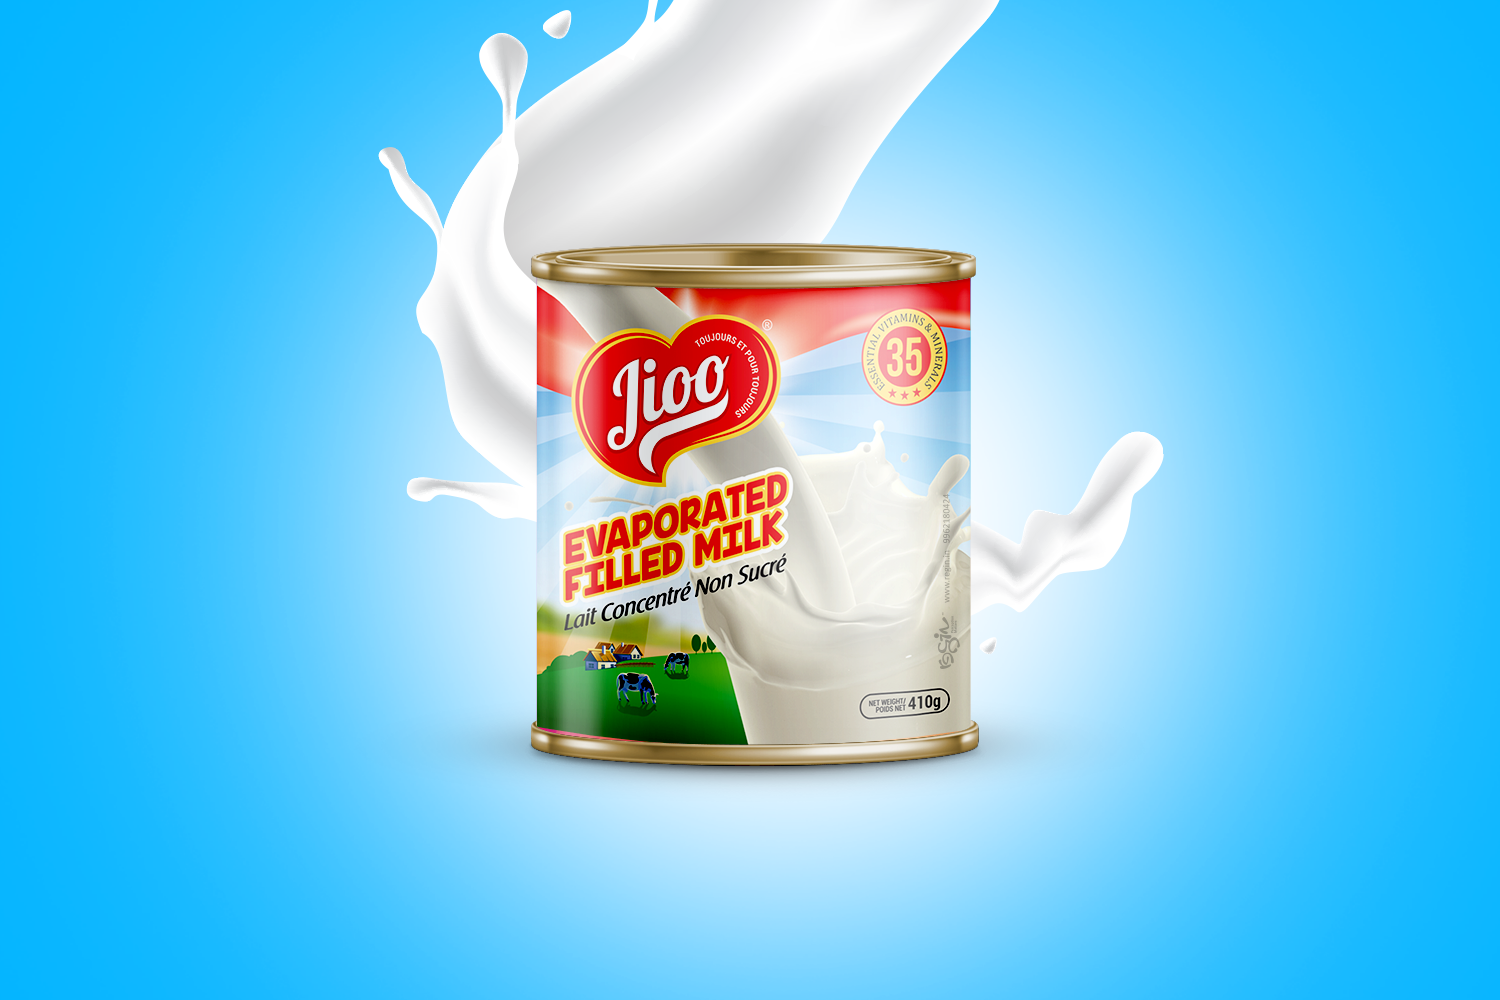 Jioo Evaporated Filled Milk